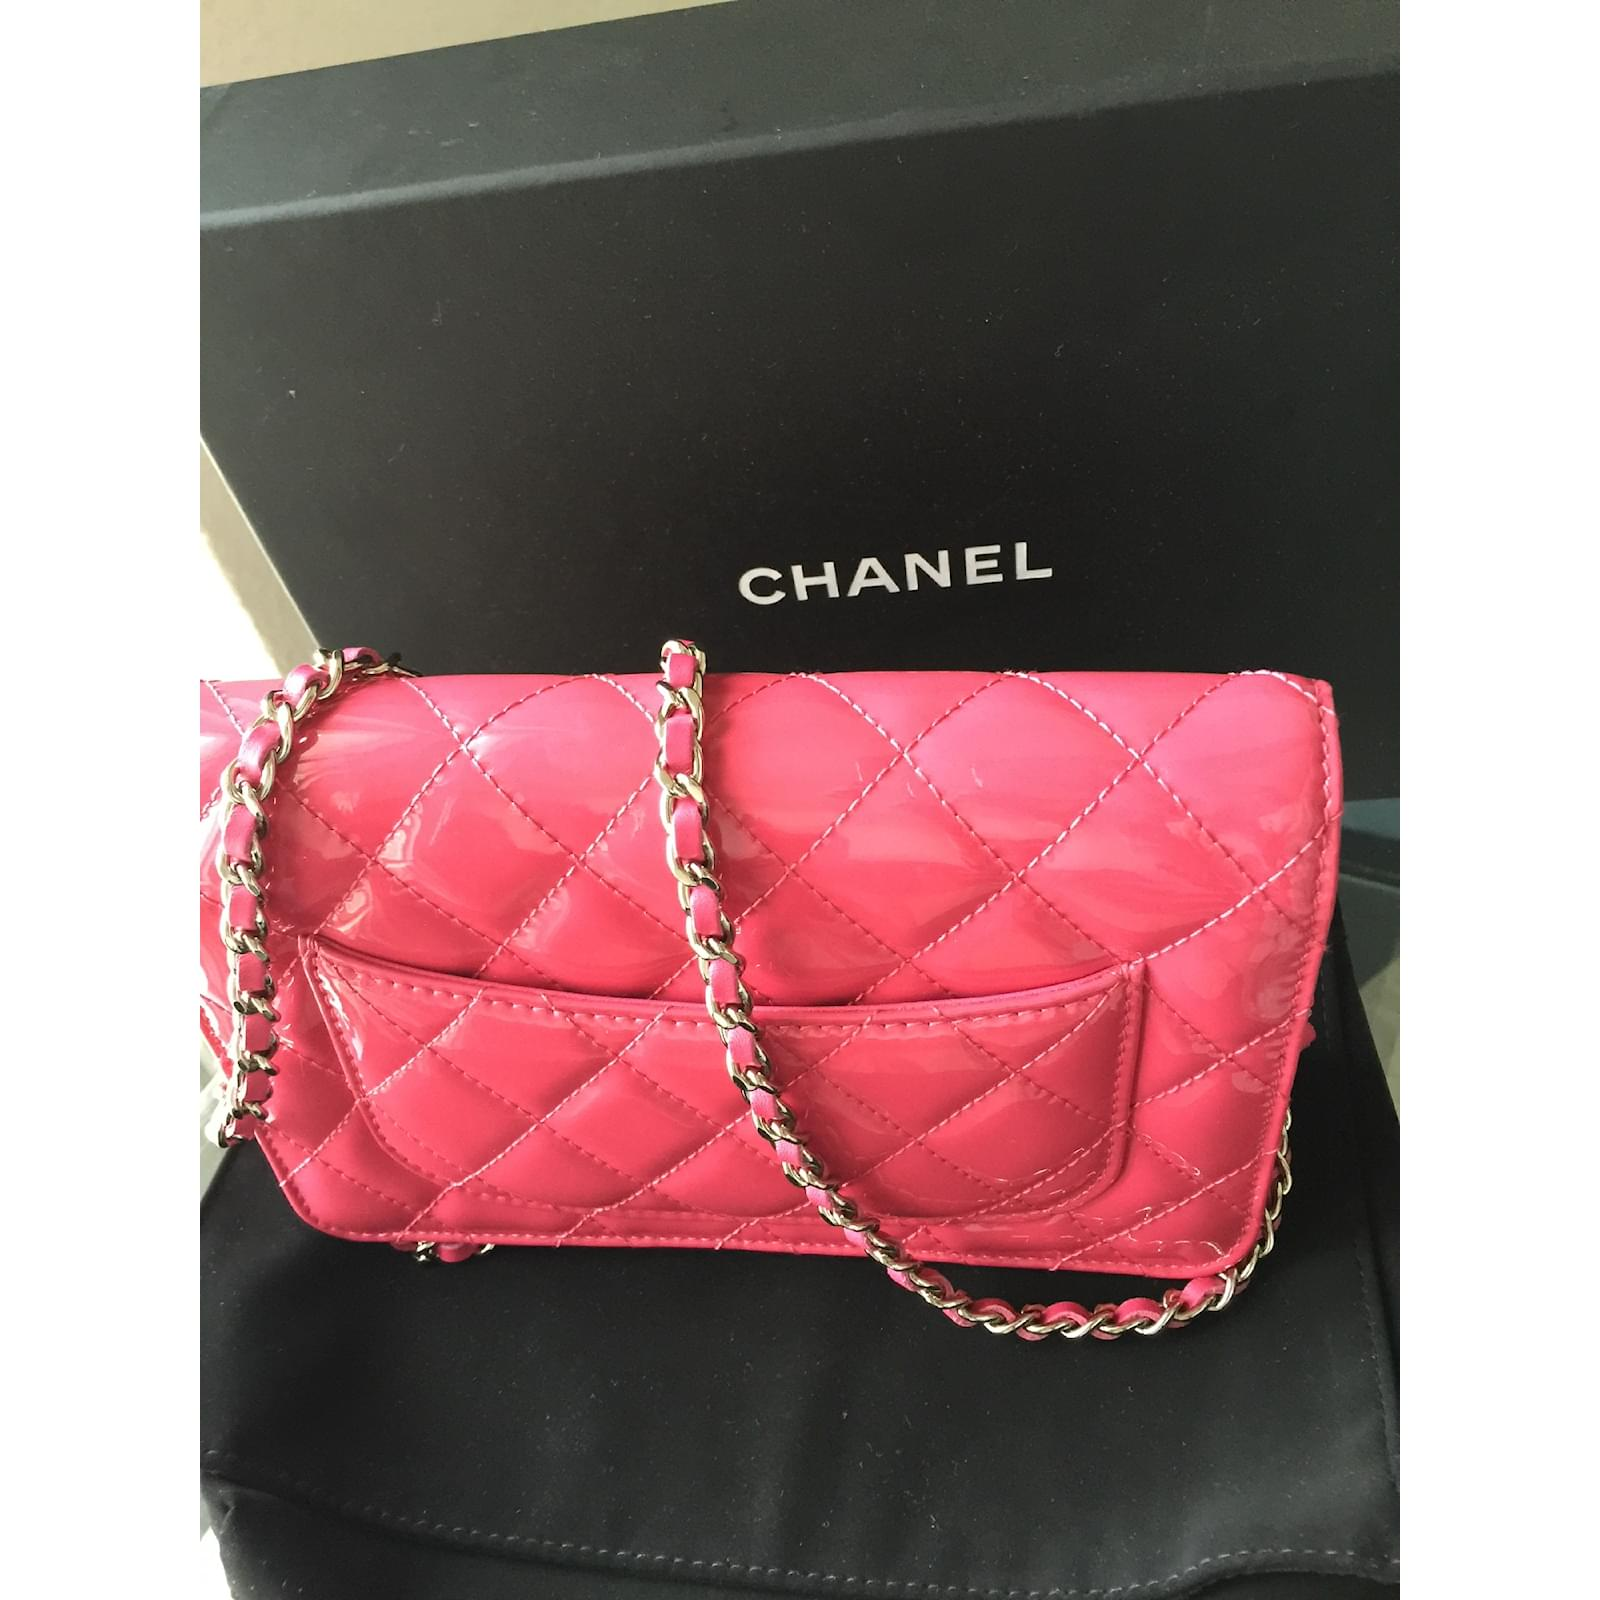 Chanel Pink Chanel wallet on chain WOC Clutch bags Patent leather Pink  ref.16527 - Joli Closet 002f5a8067